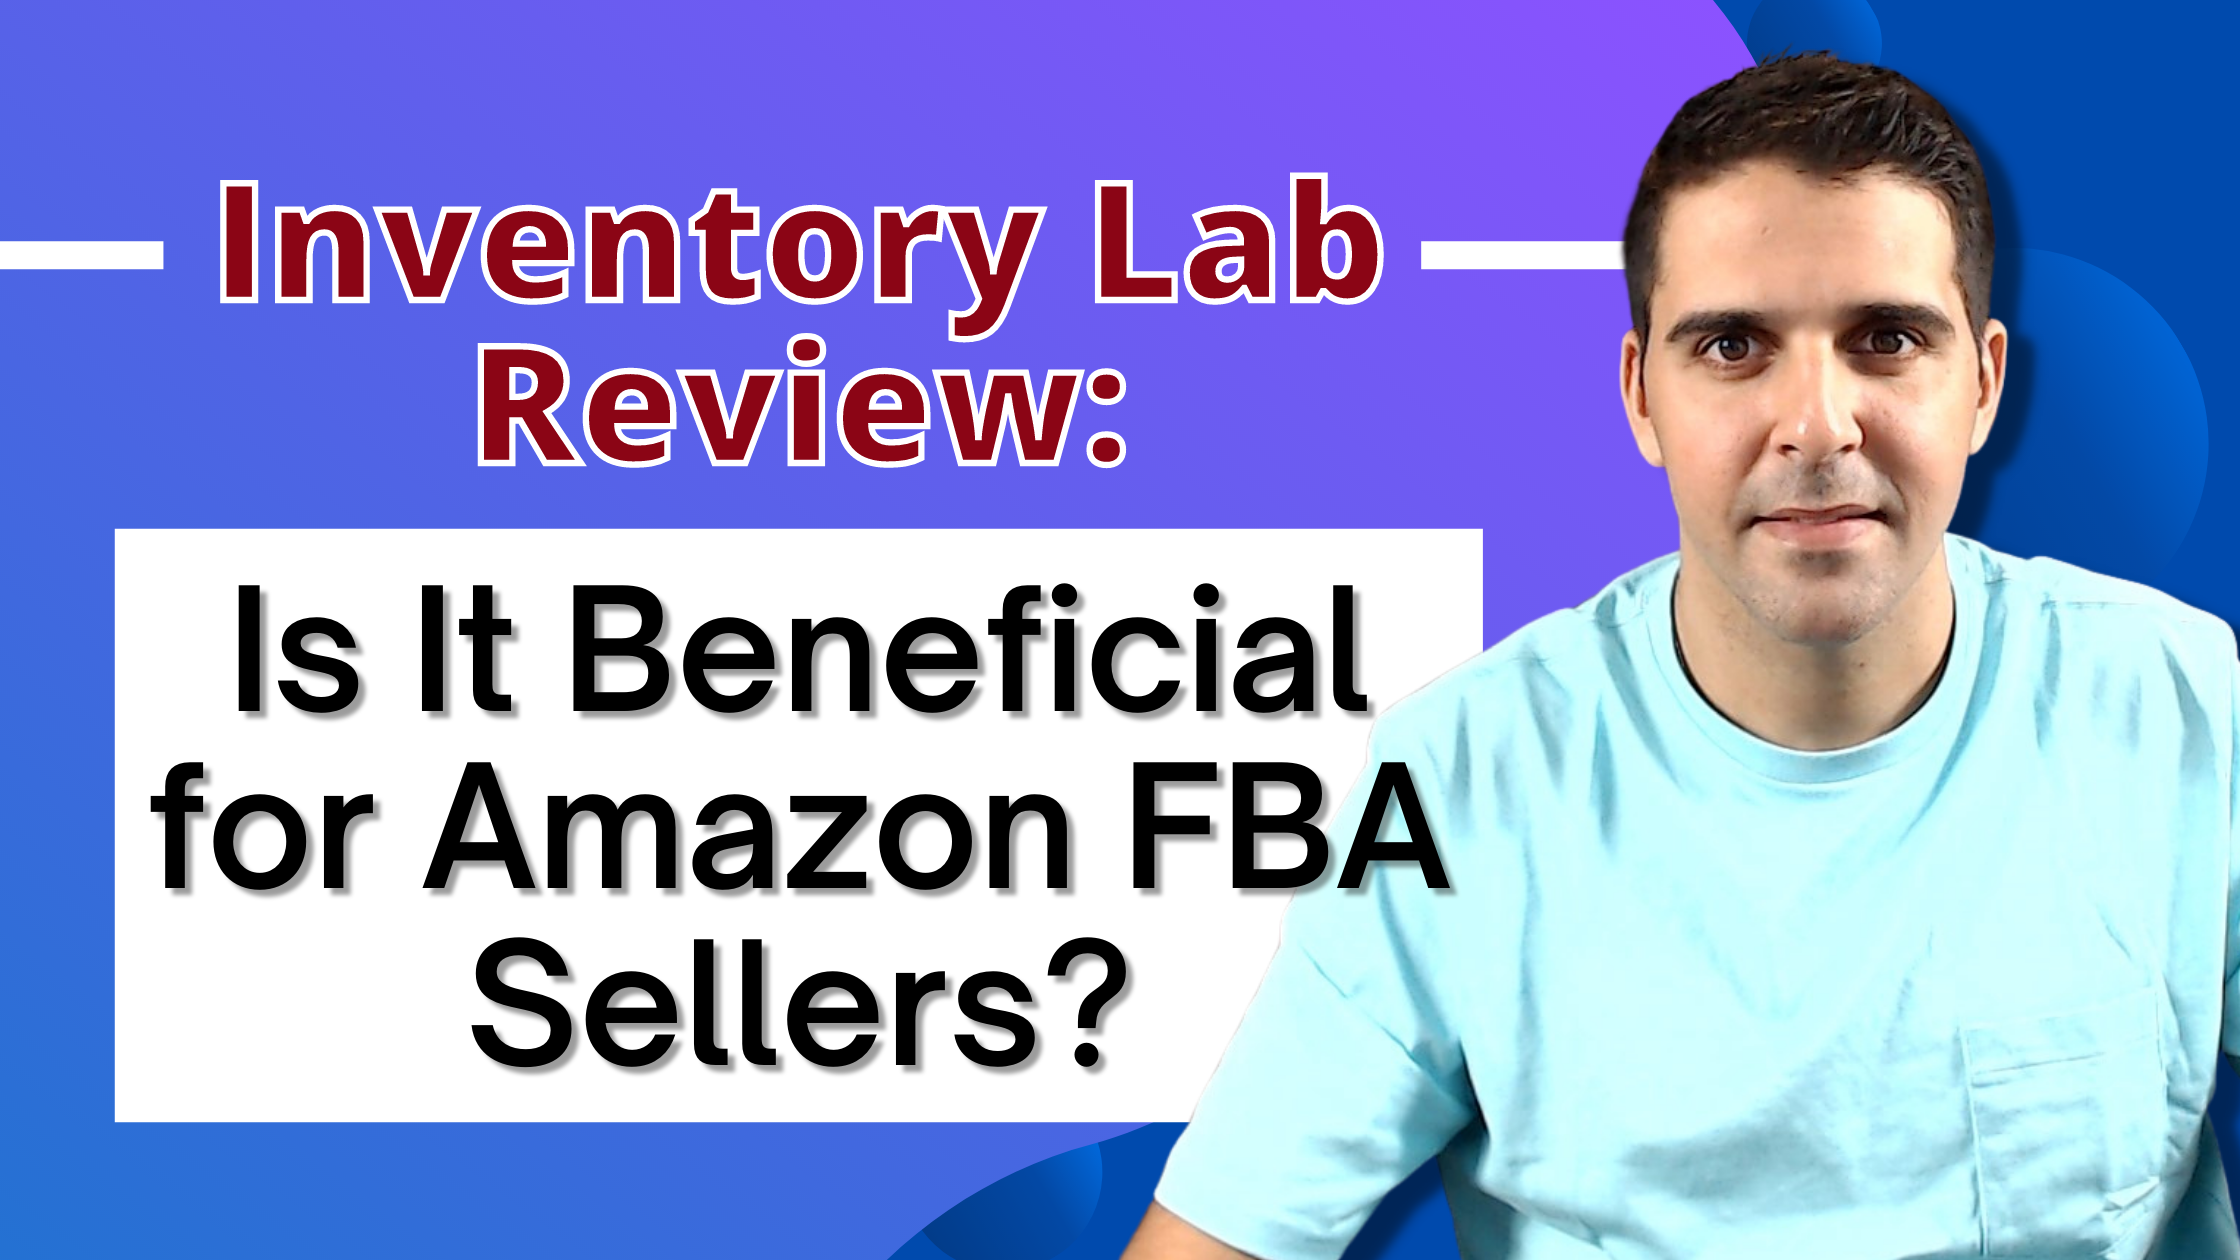 Inventory Lab Review